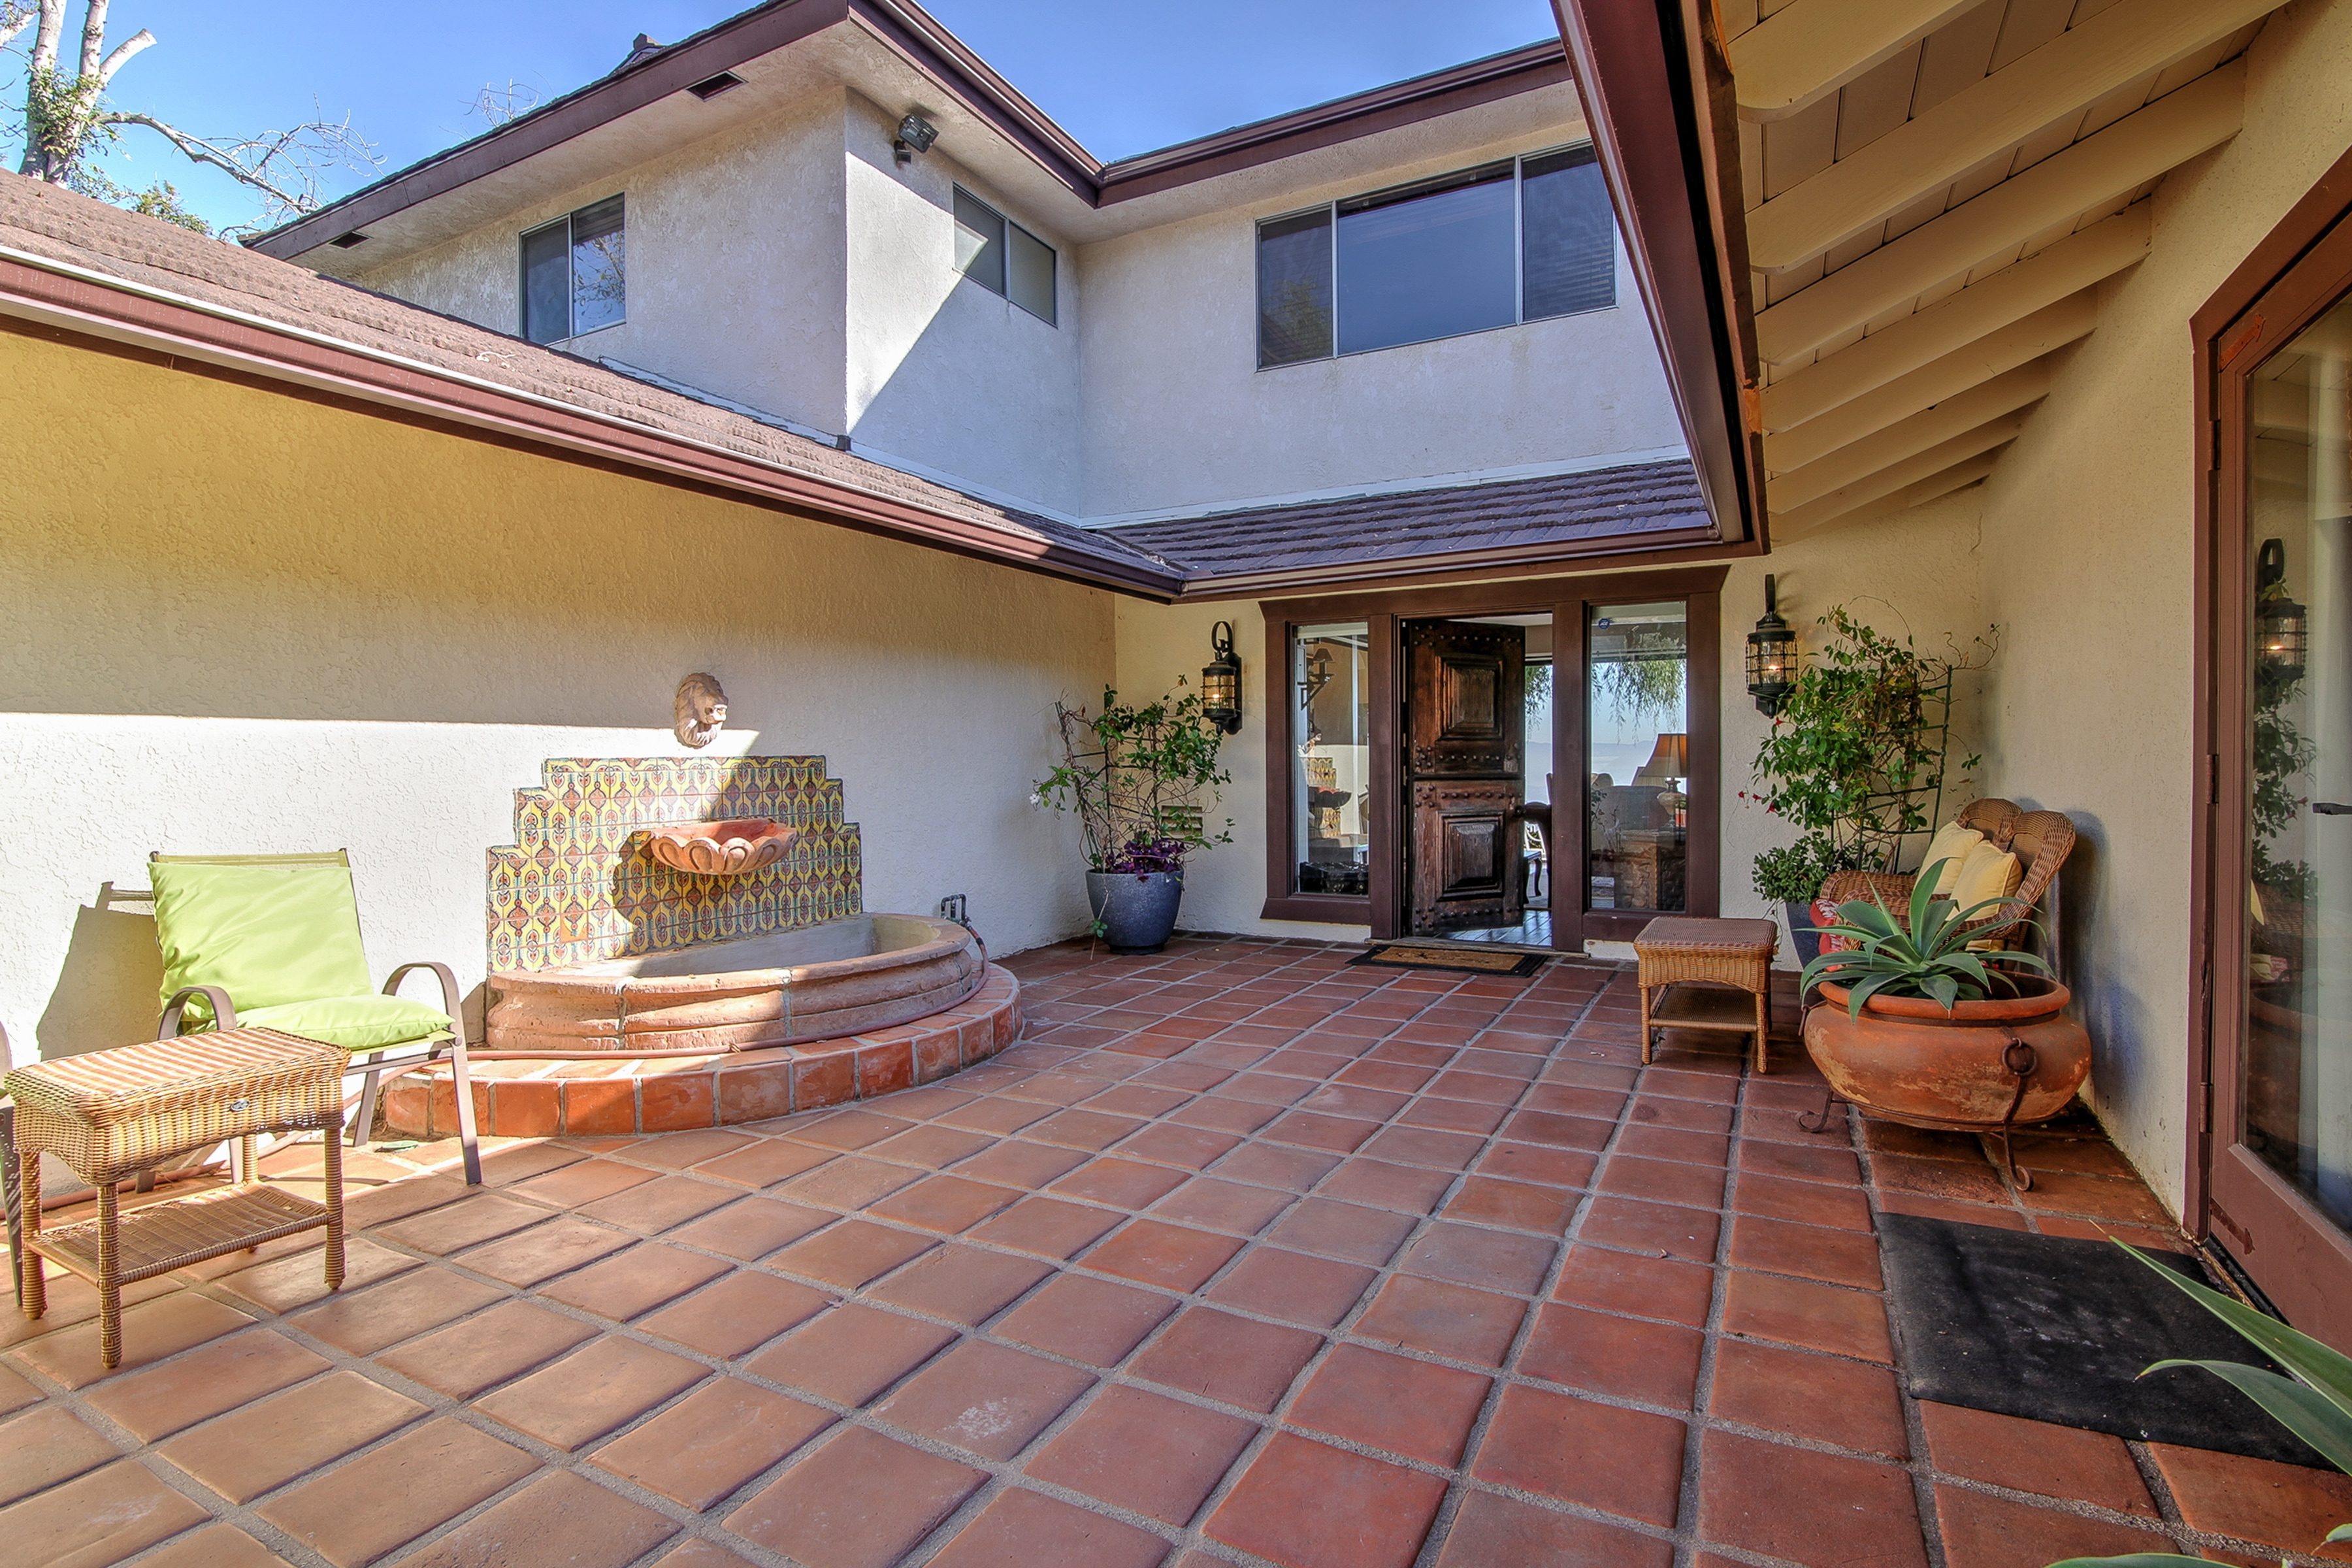 Your 2-story home is set in a peaceful neighborhood atop Laguna Beach.